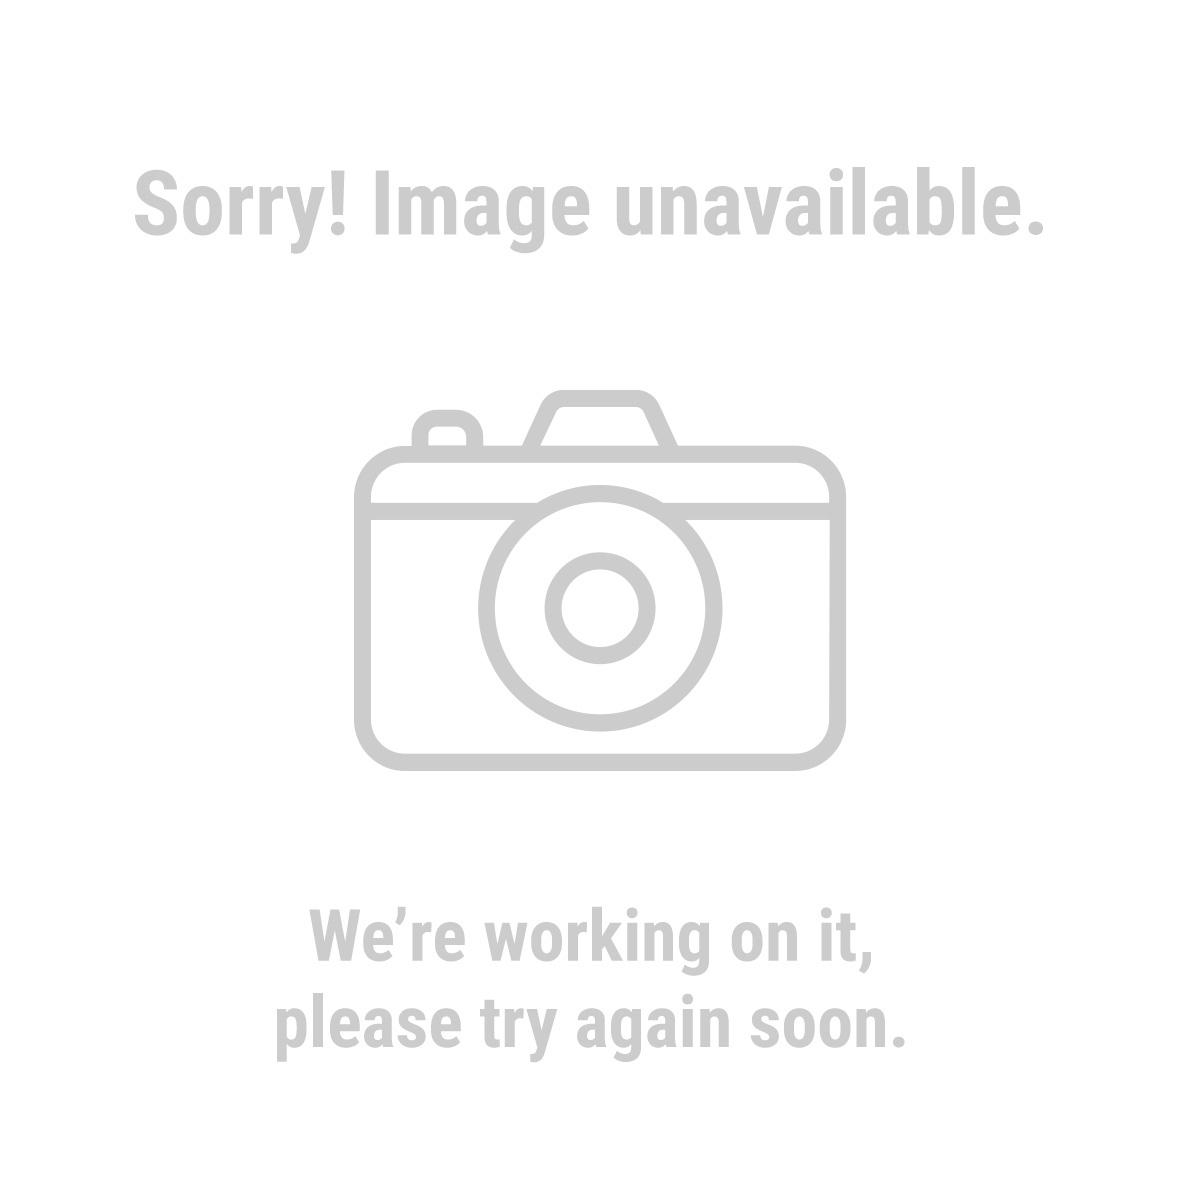 Haul Master Automotive 44649 1000 Lb. Steel Loading Ramps, Set of Two